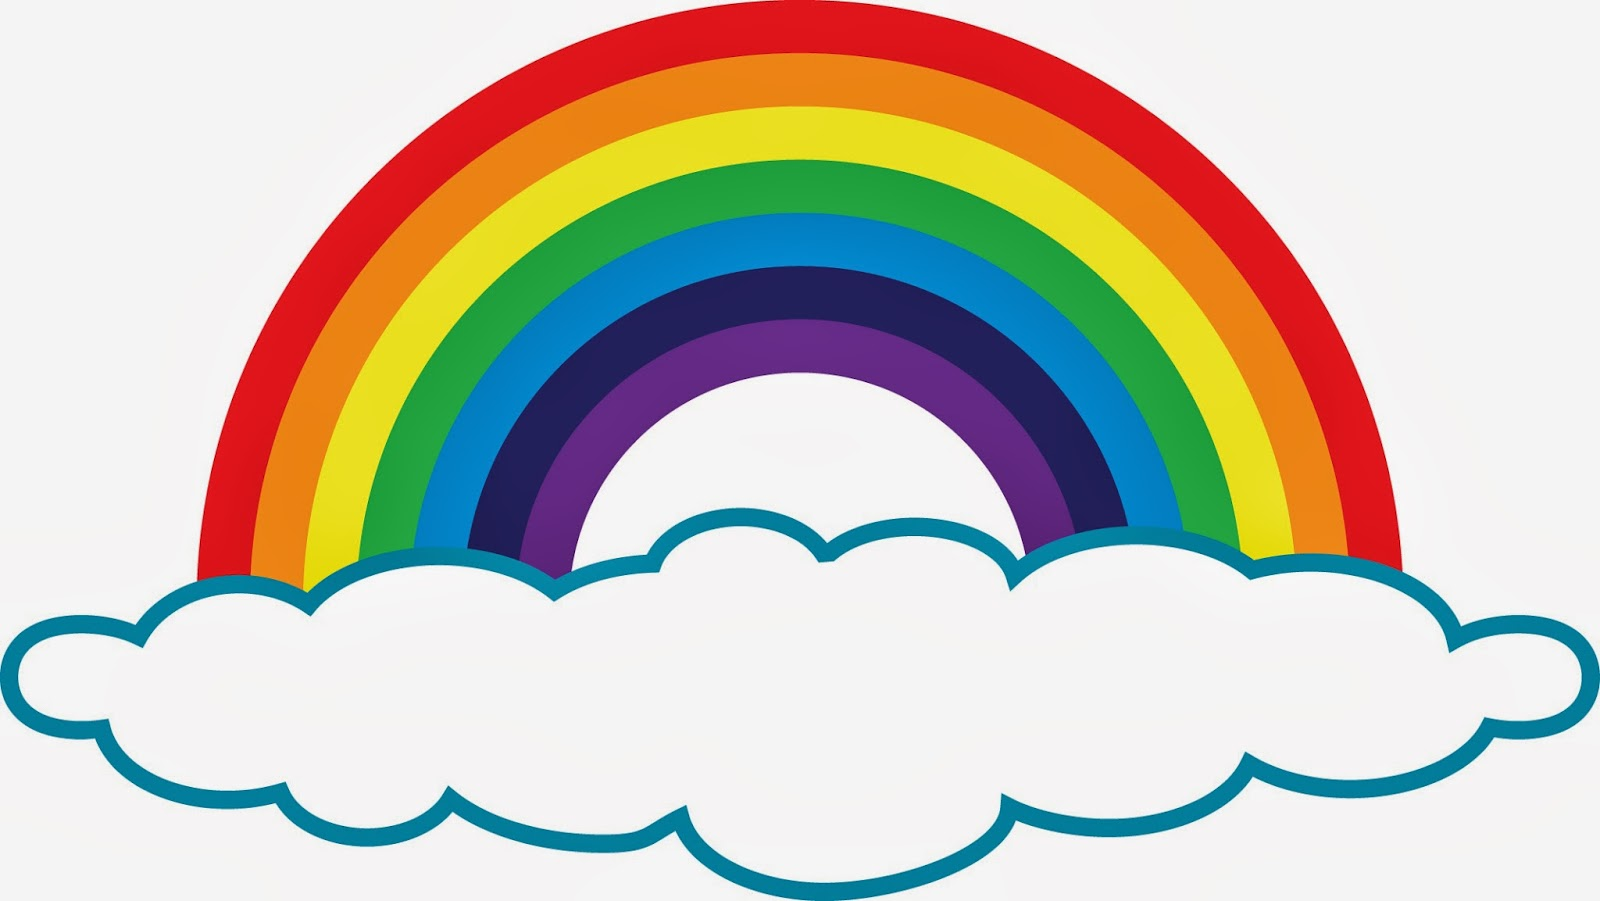 Rainbow clipart #9, Download drawings